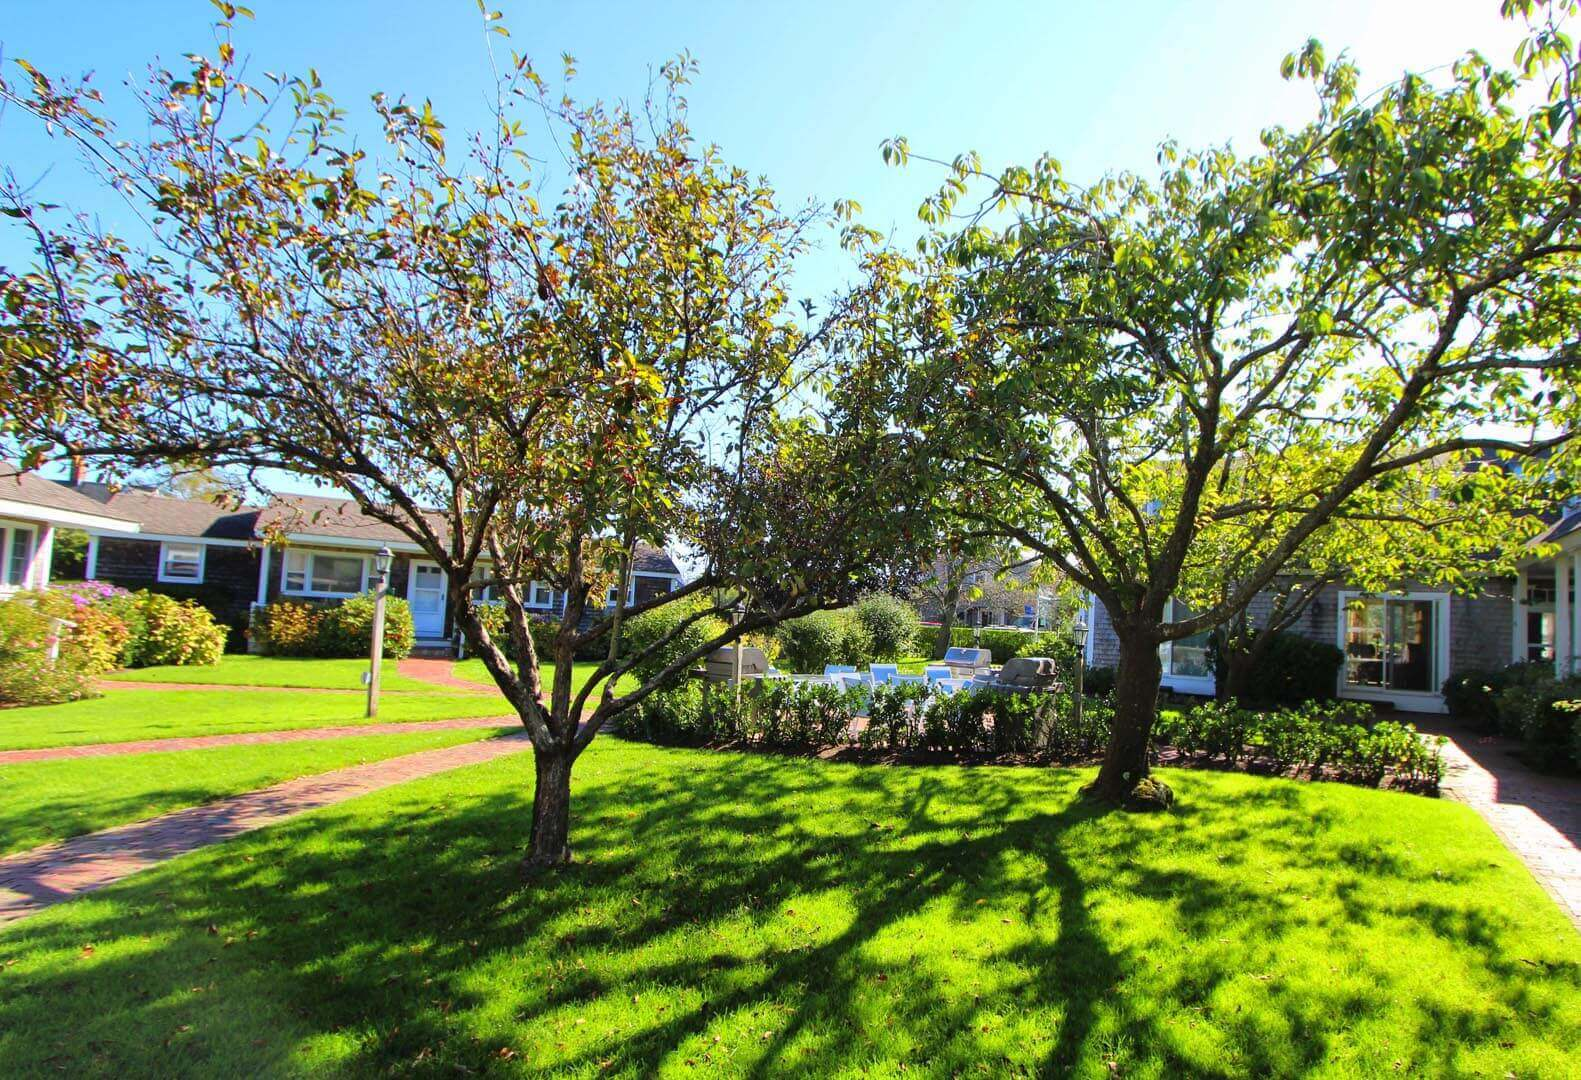 A scenic view of the patio area at VRI's Brant Point Courtyard in Massachusetts.